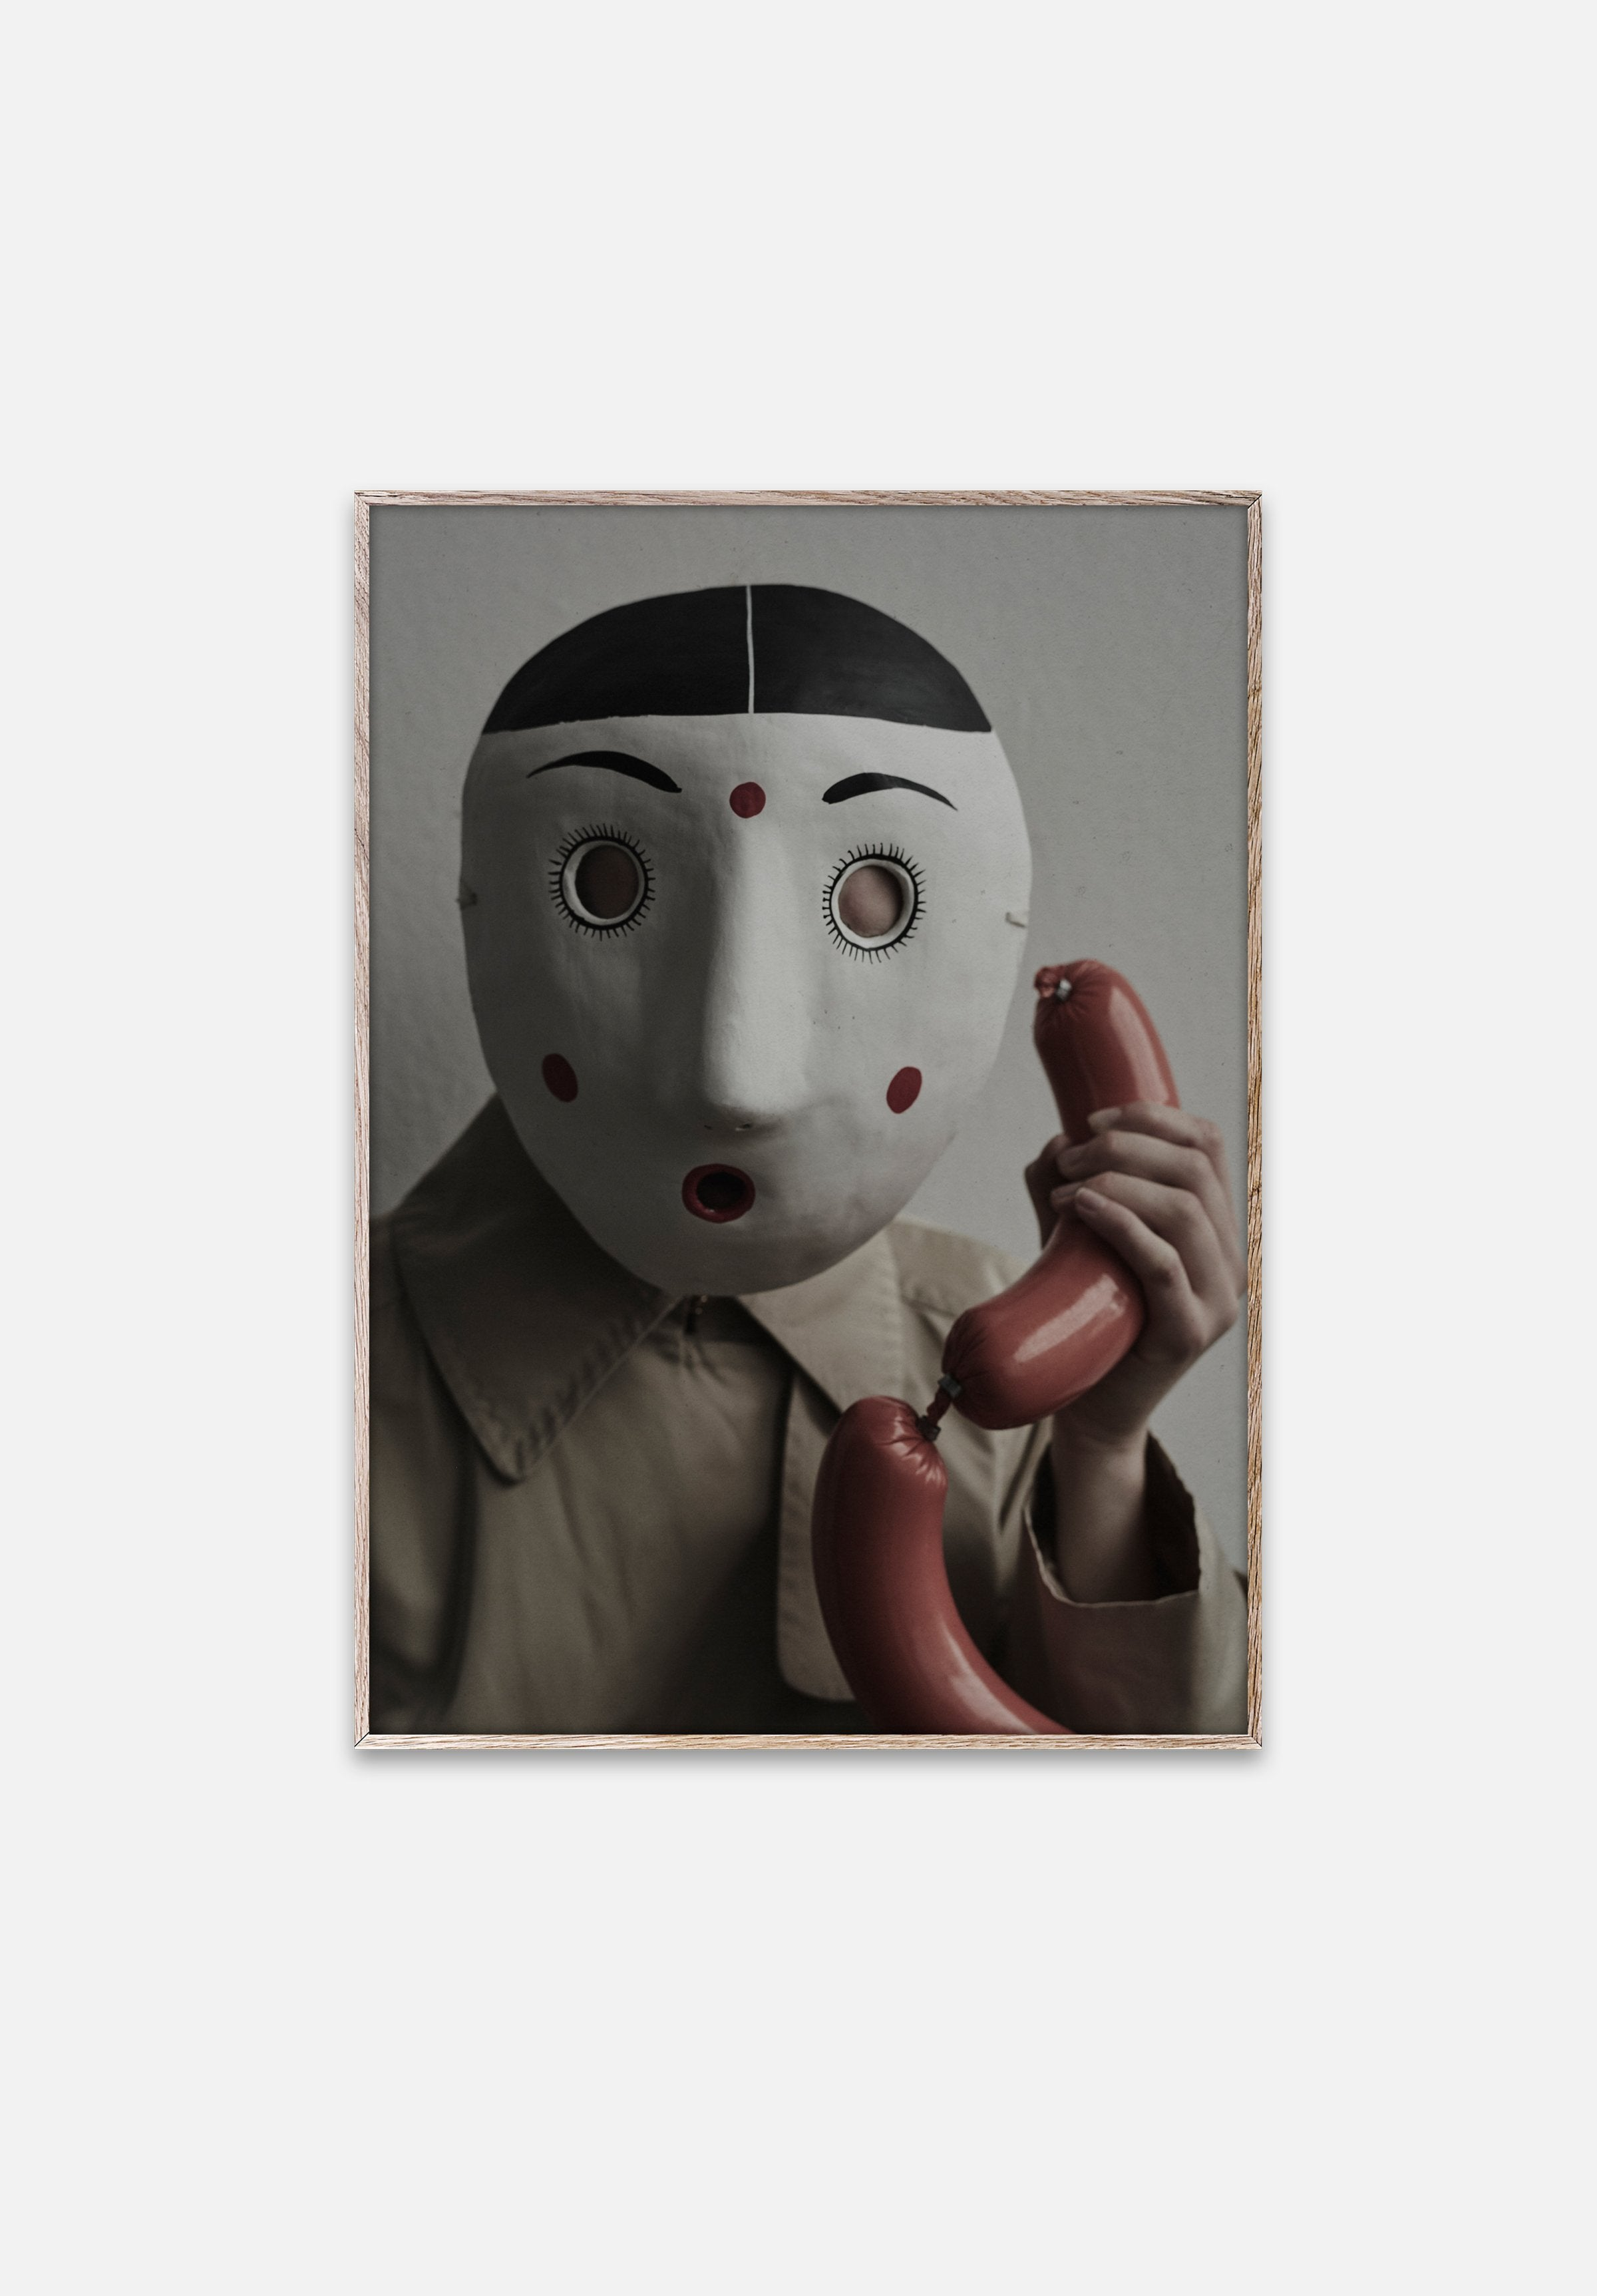 Hello-Henrik Bülow-Paper Collective-30x40cm-Average